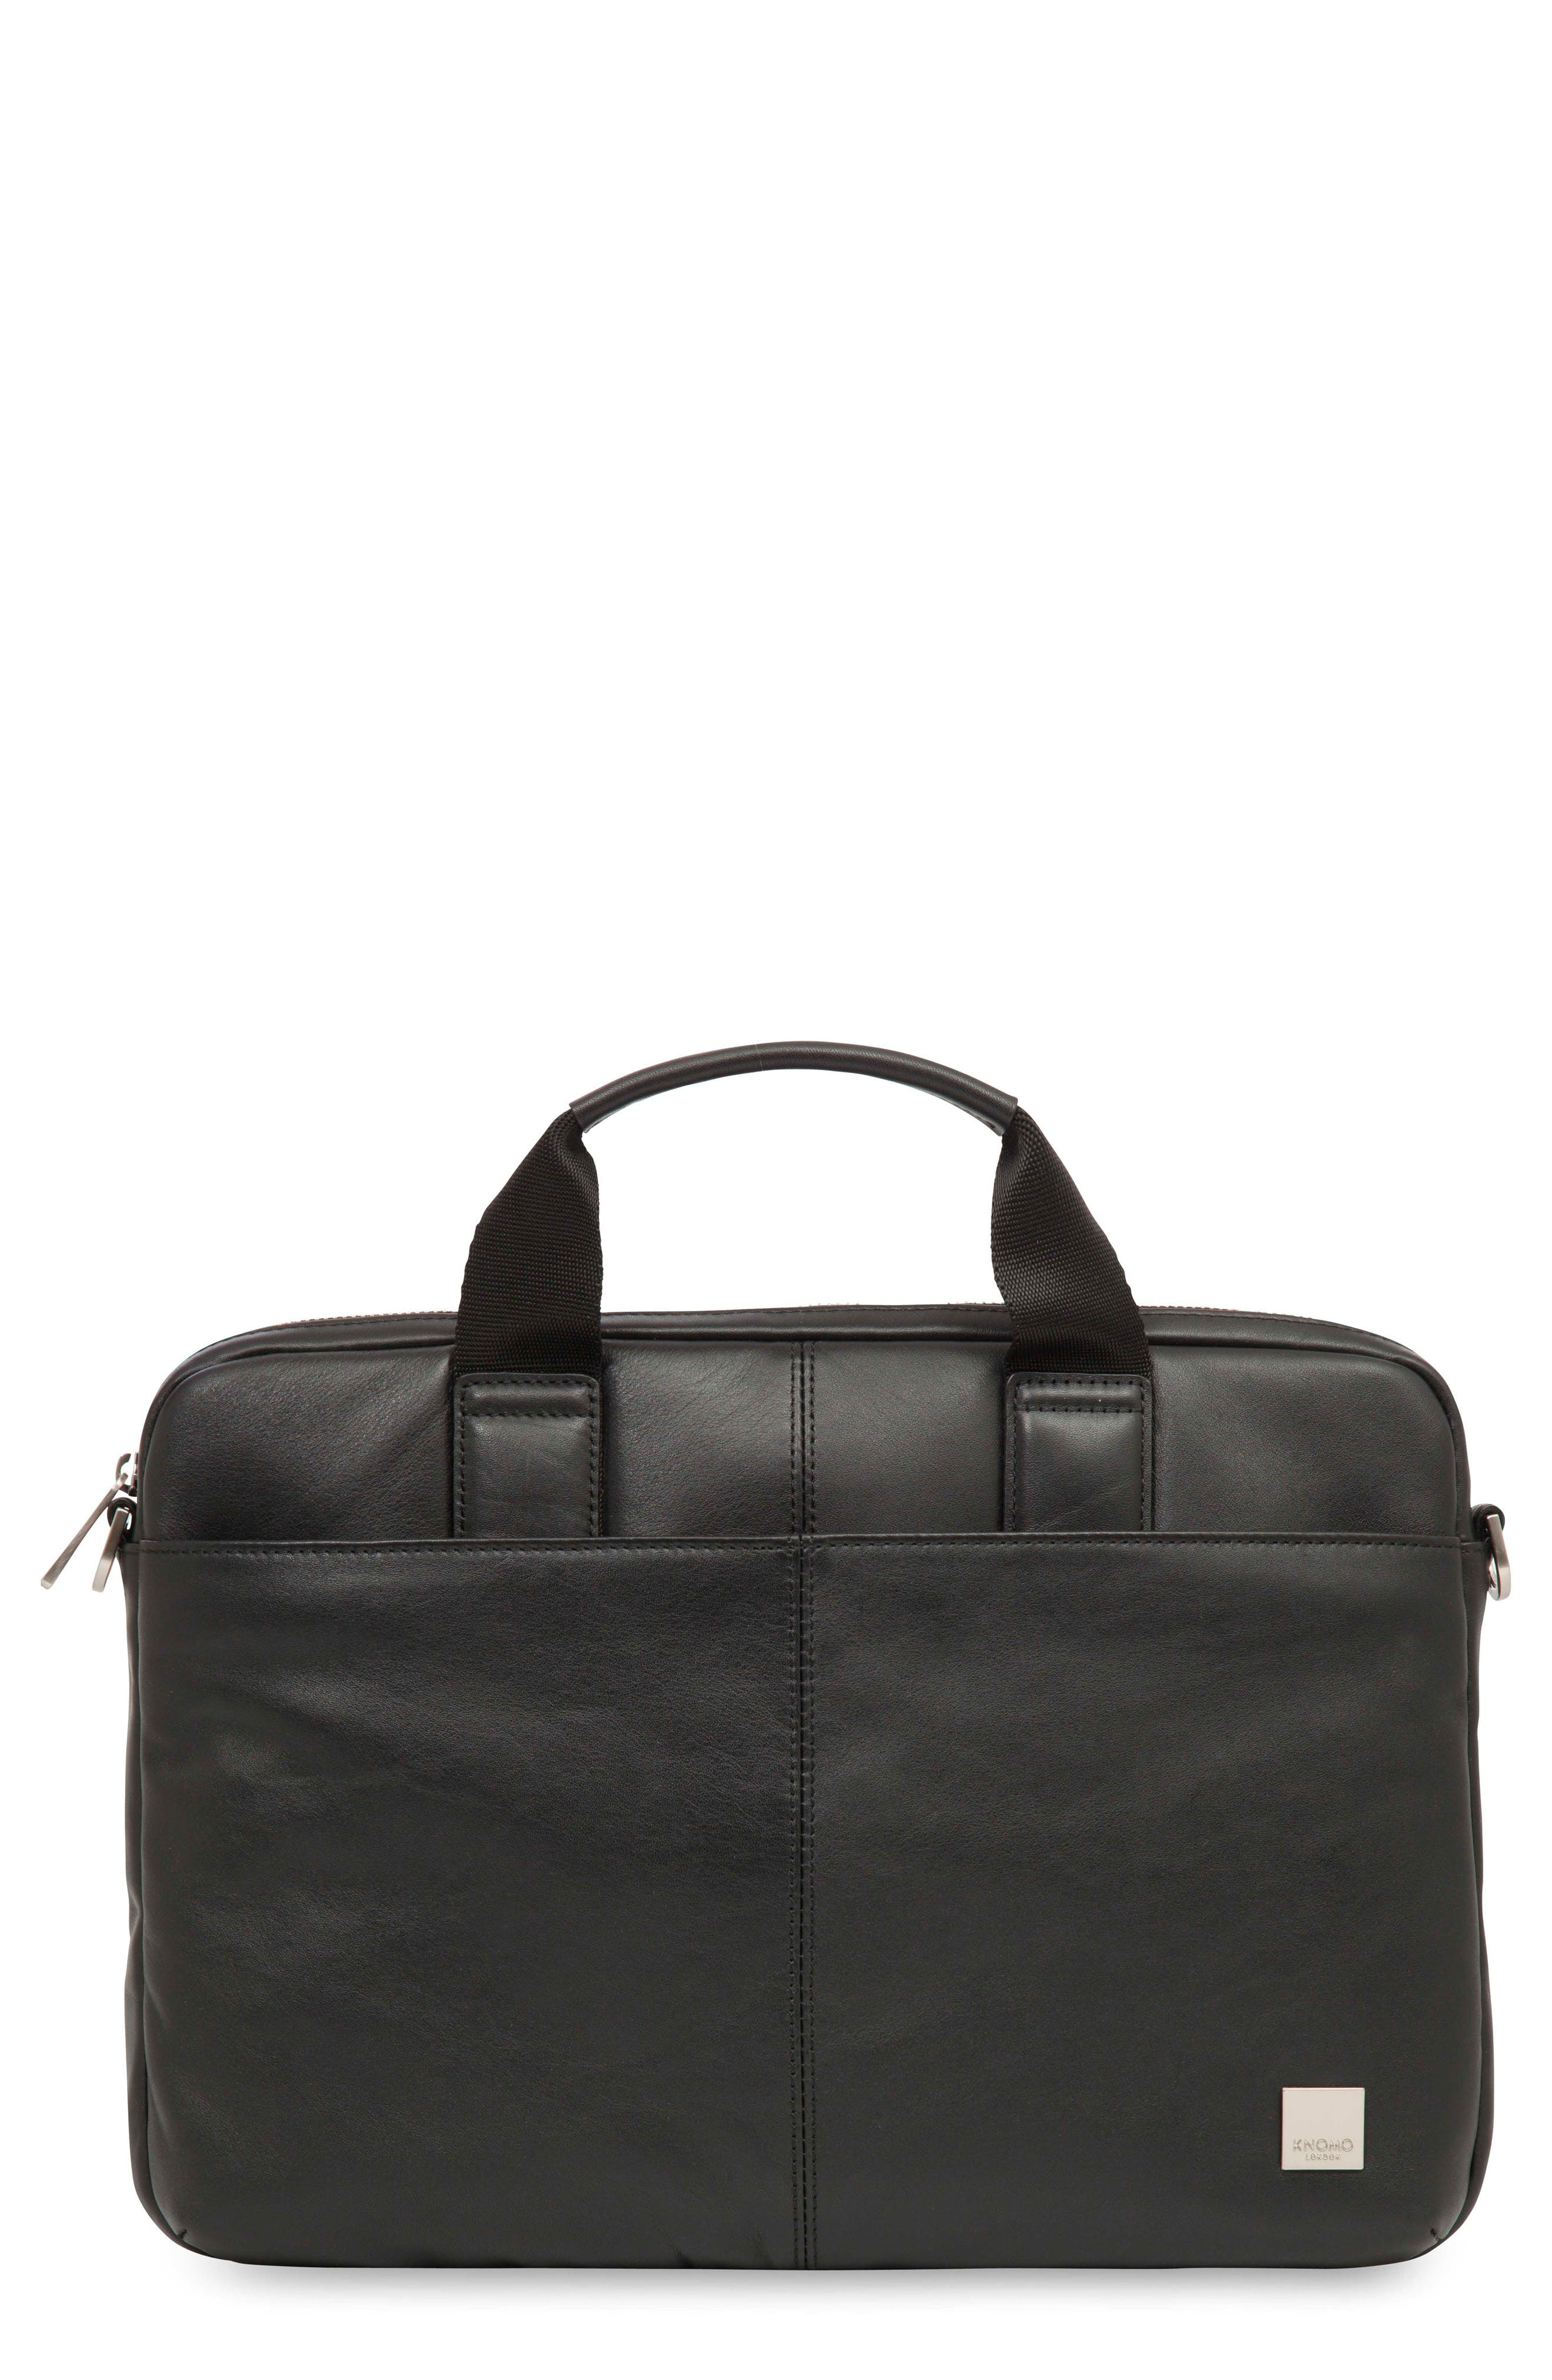 KNOMO London Brompton Stanford RFID Leather Briefcase